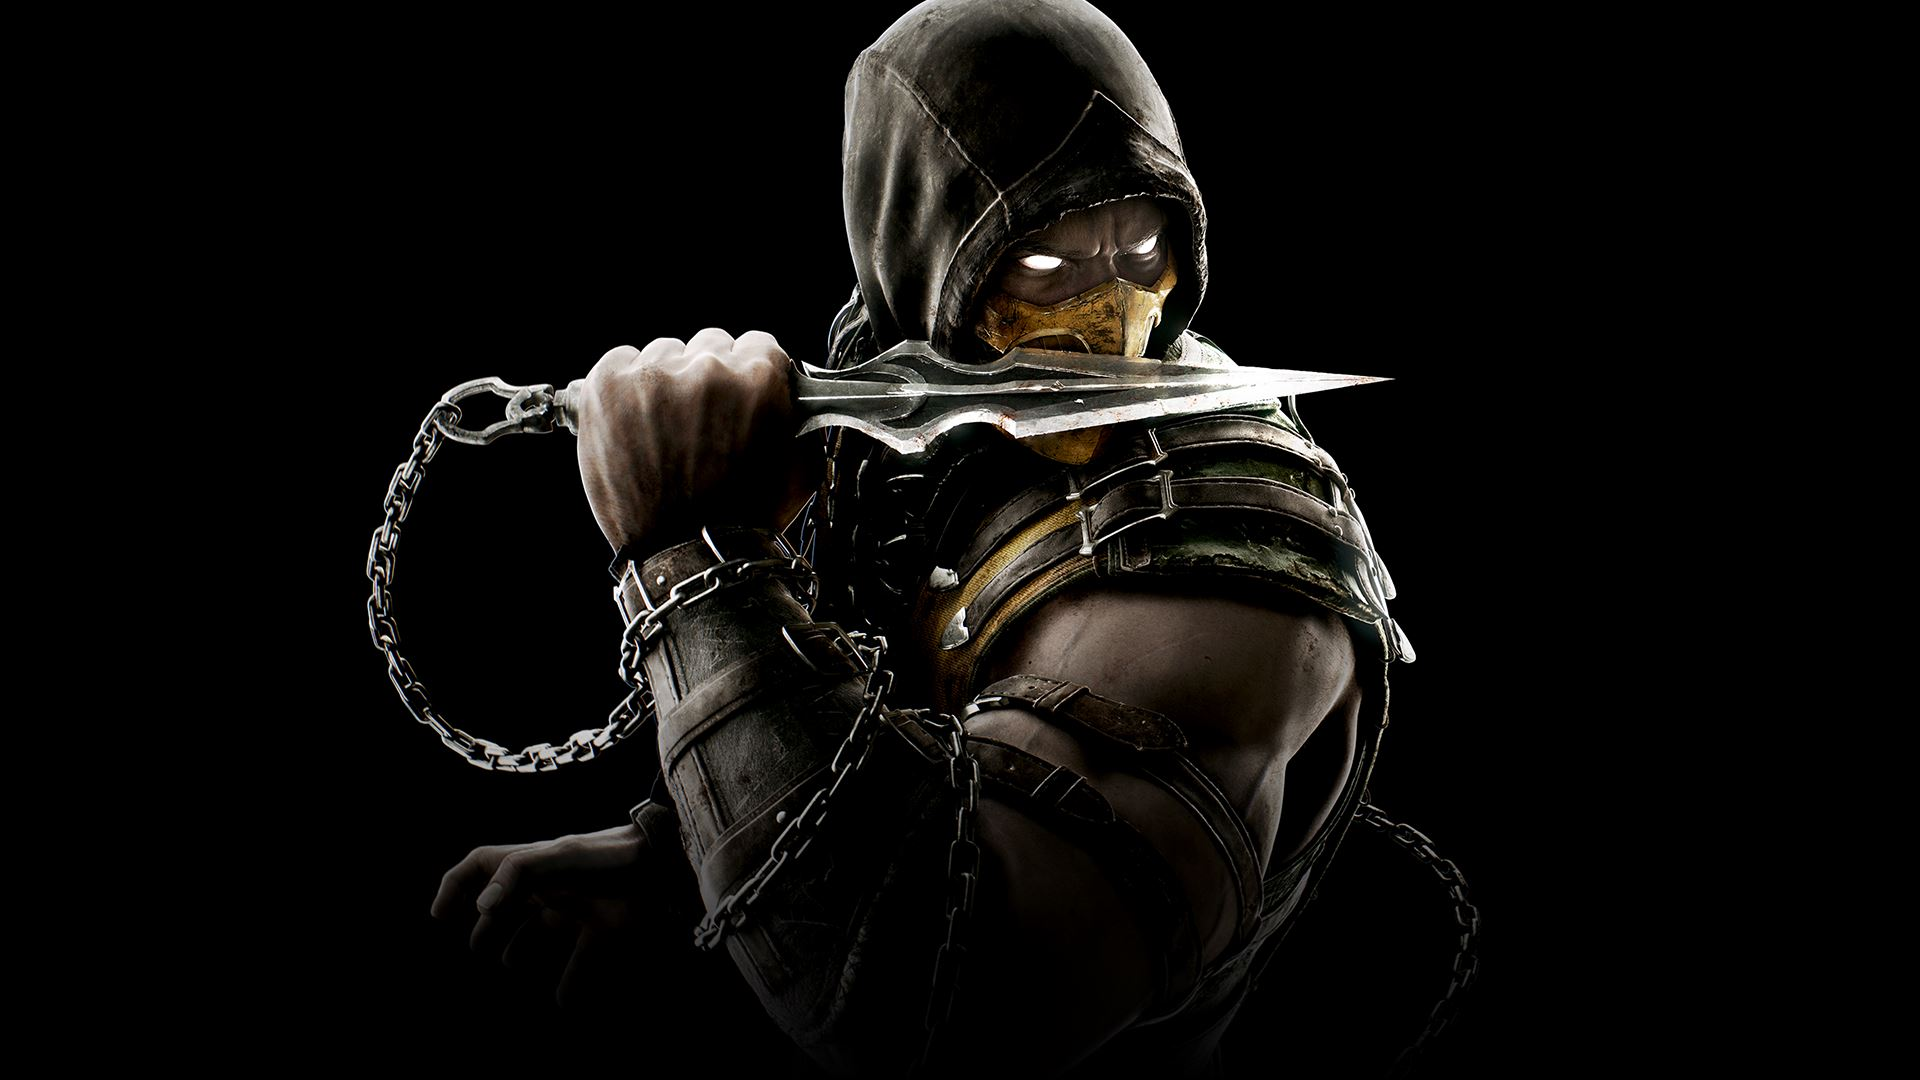 Scorpion Mortal Kombat X Wallpapers HD Wallpapers 1920x1080